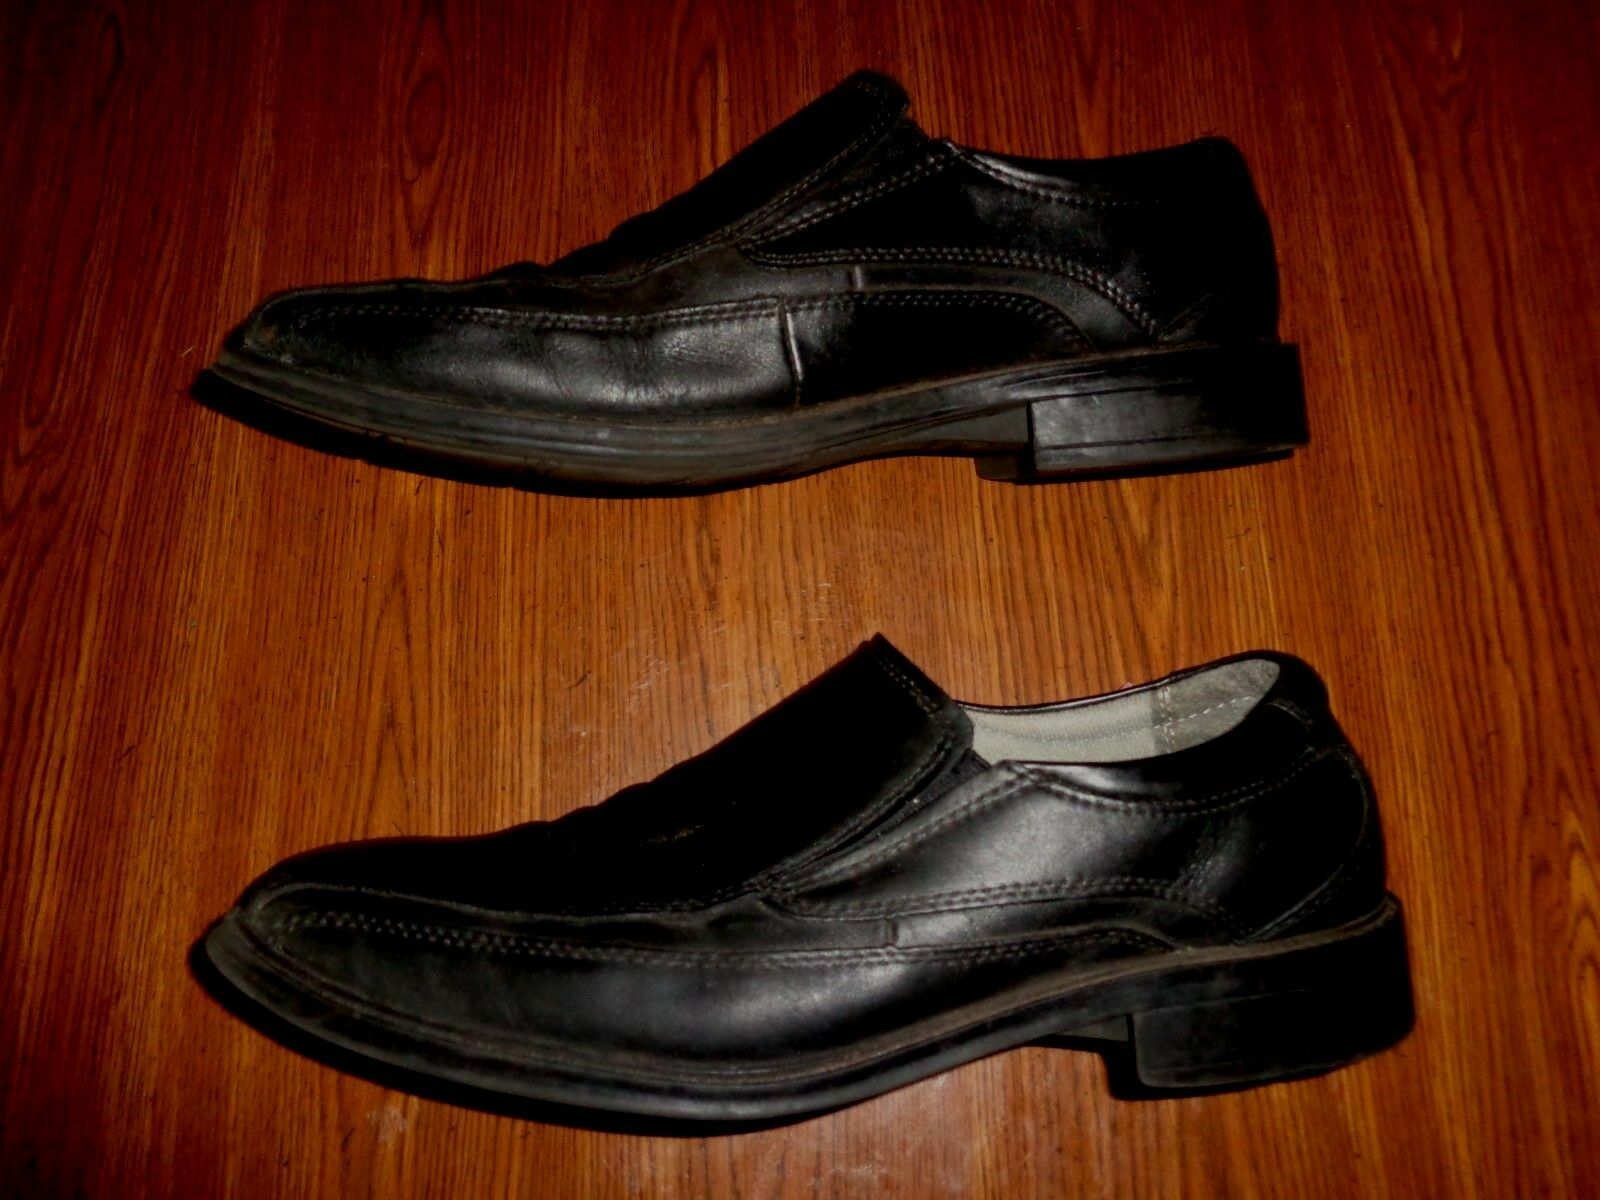 Men's/Women's JARMAN BLACK SHOES MEN'S SIZE 9 welcome Clever and practical Order welcome 9 Current shape 35a532